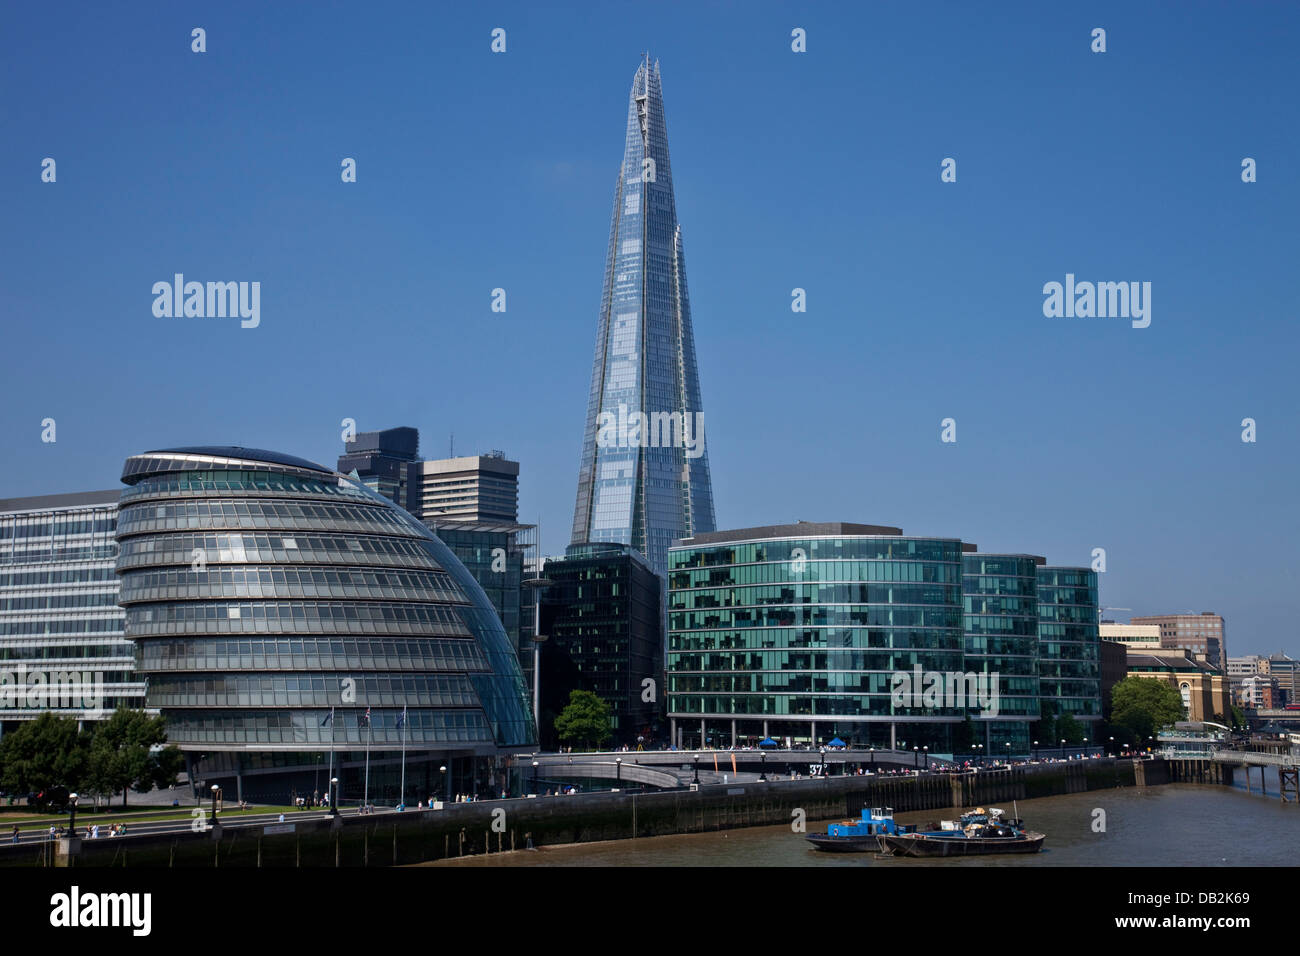 The London Assembly Building (City Hall), More London Development and The Shard, London, England - Stock Image